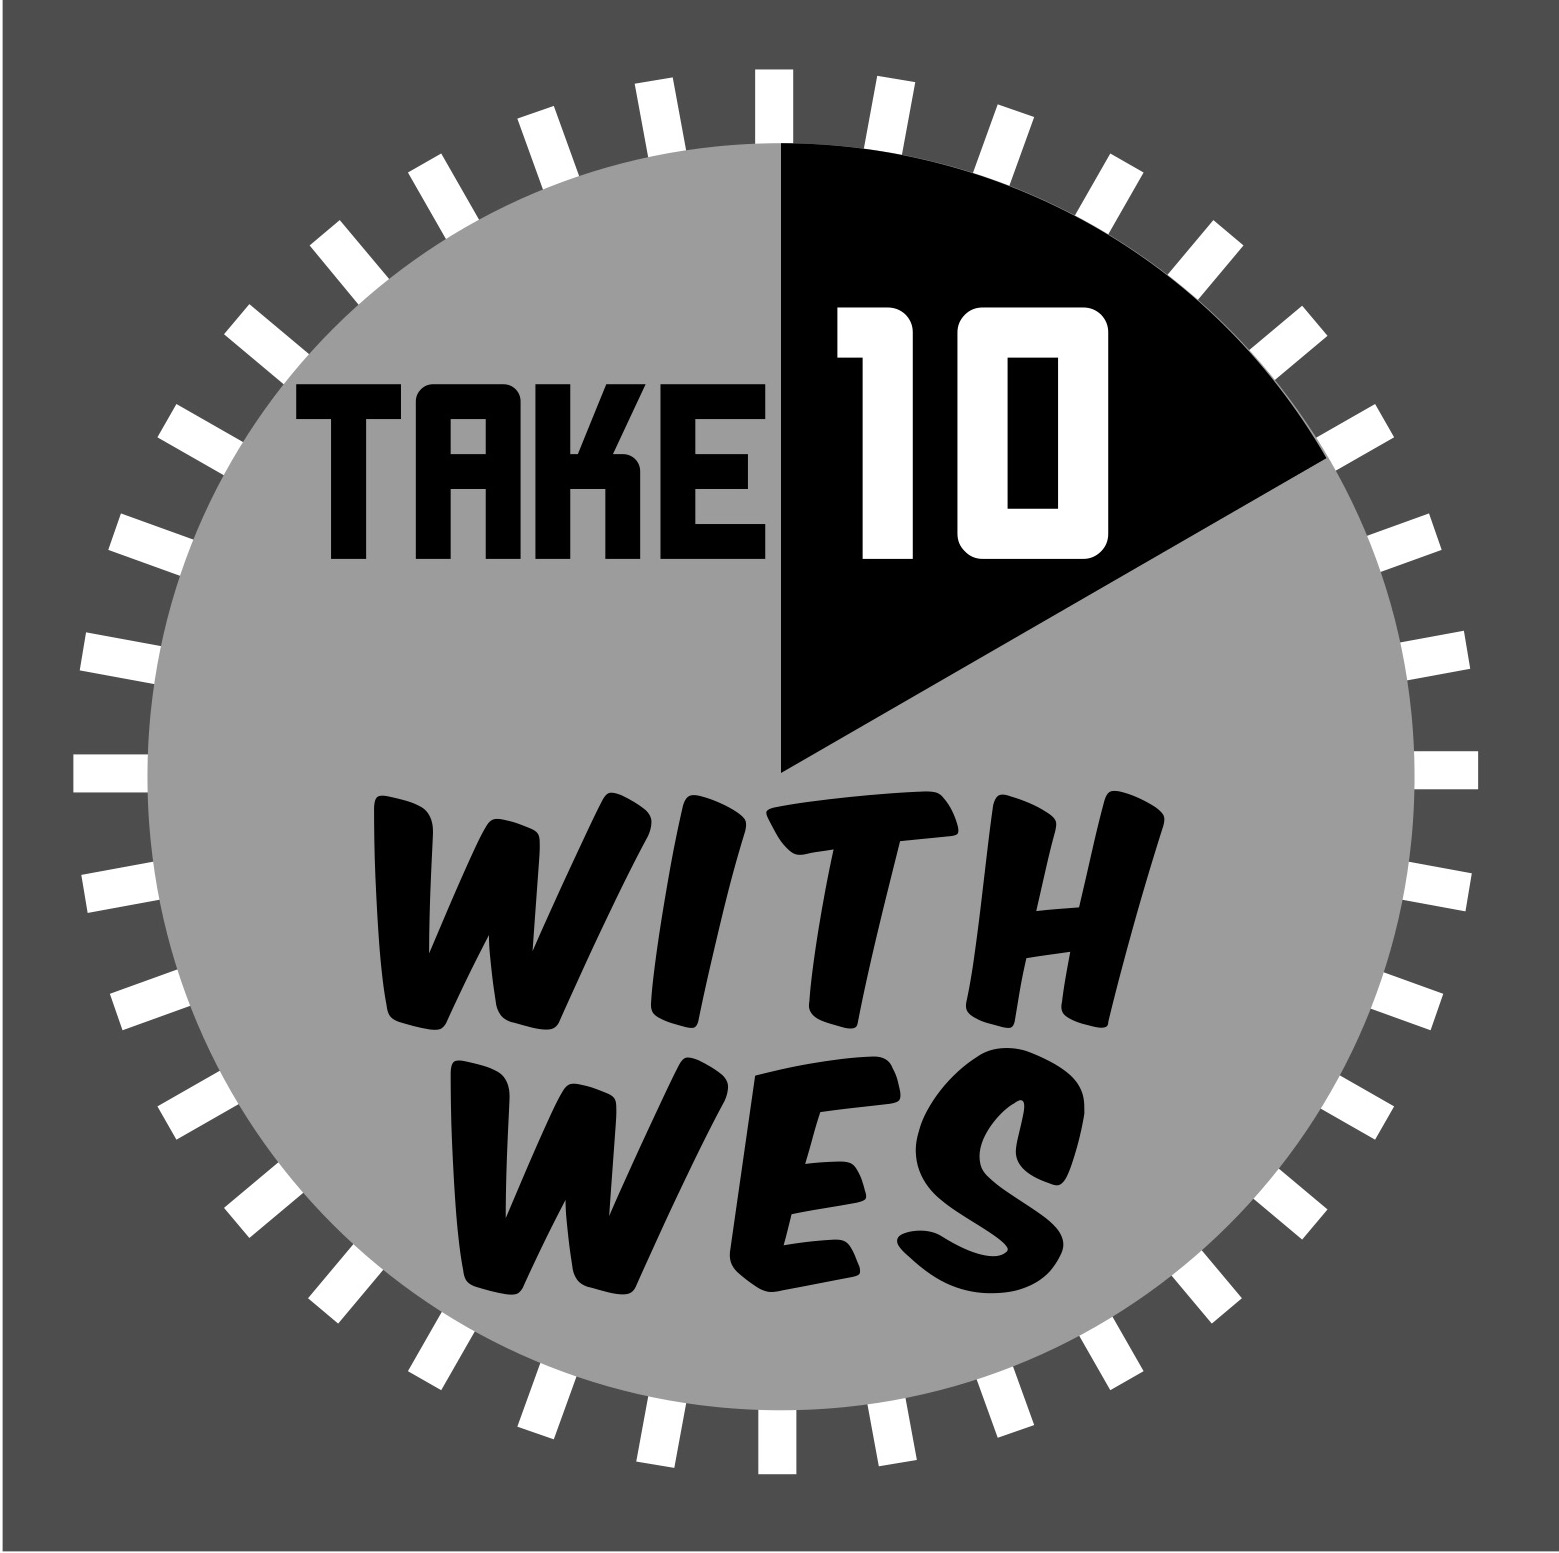 Take 10 with Wes